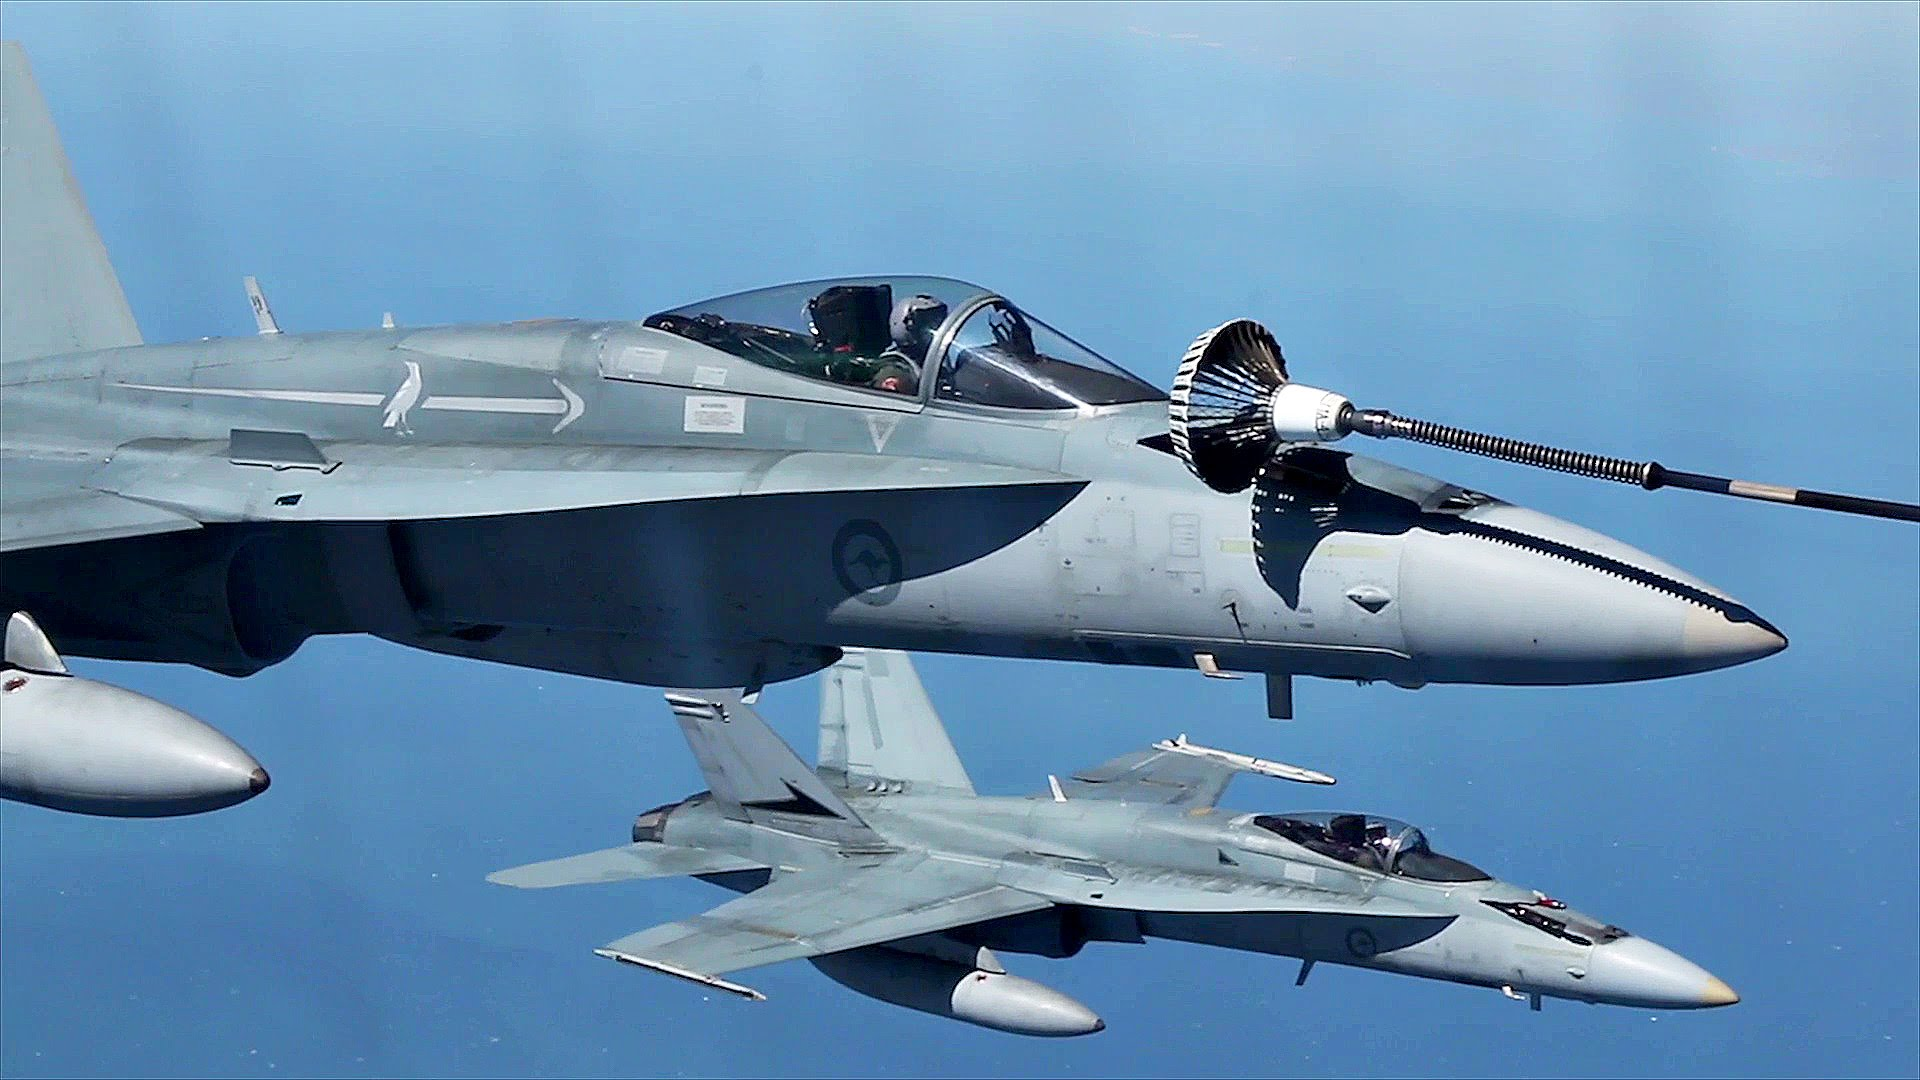 Royal Australian Air Force F/A-18 Mid-air Refueling